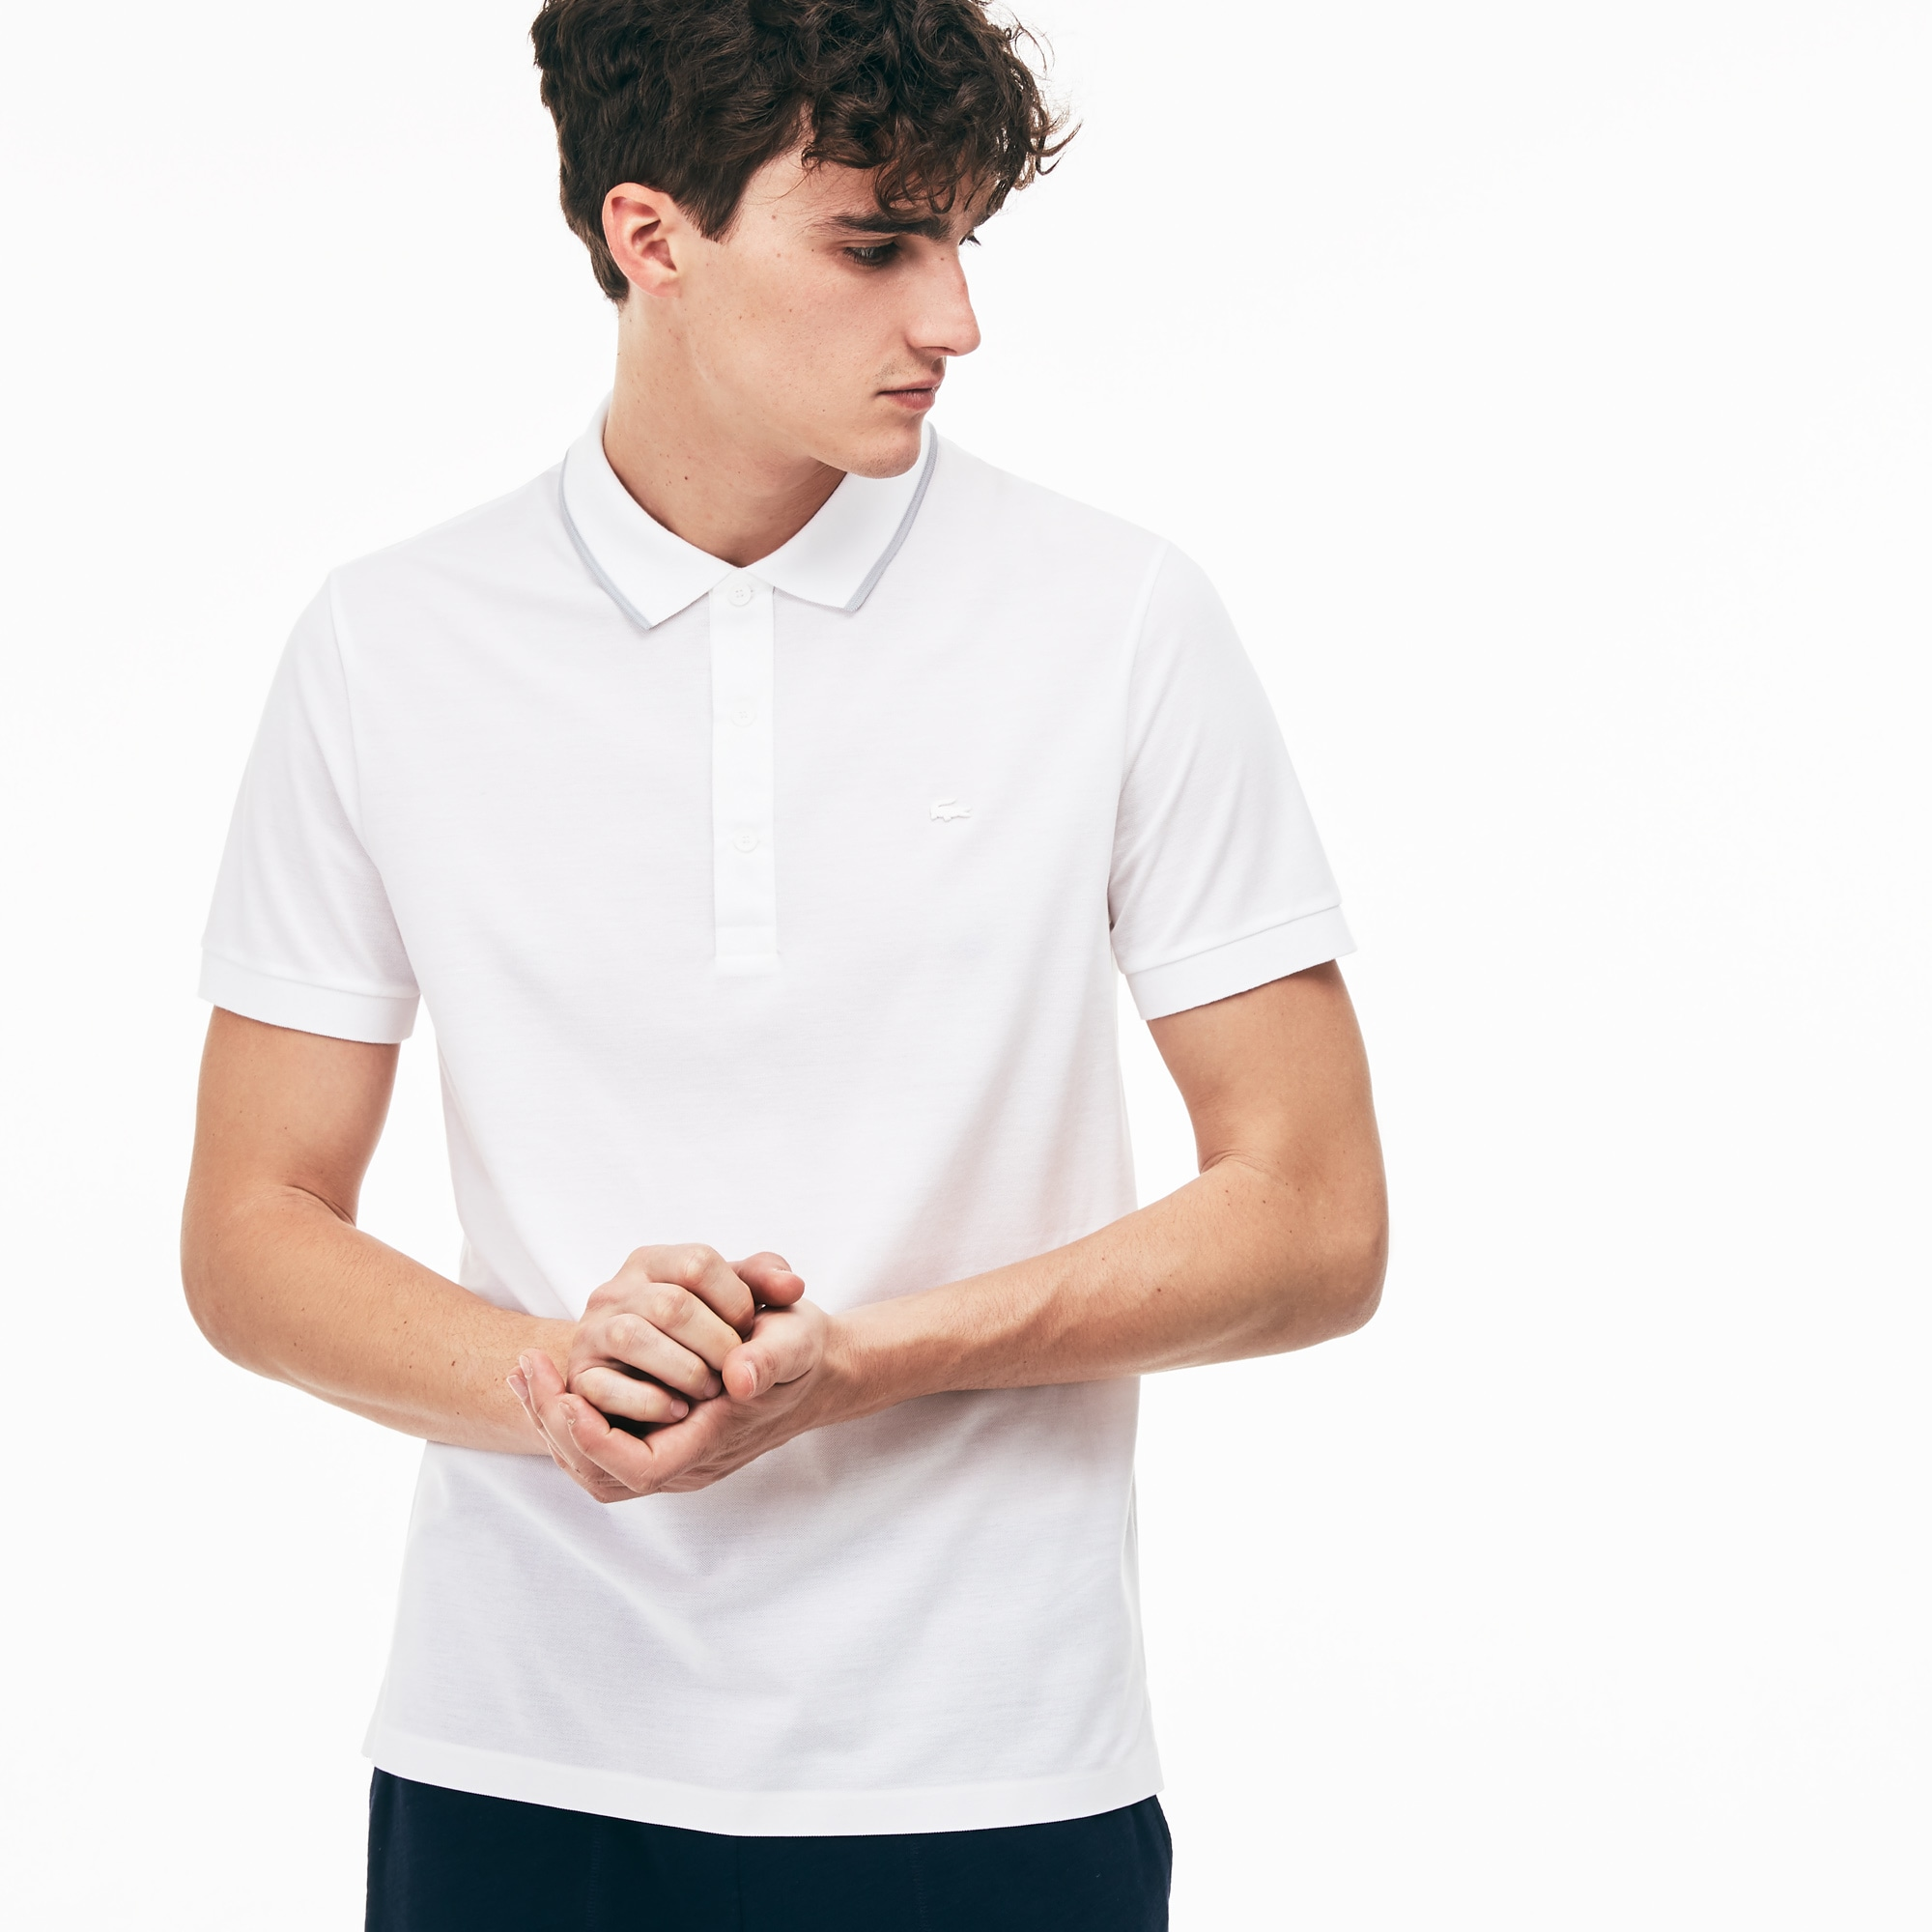 Polo regular fit Lacoste MOTION de piqué de algodón Pima